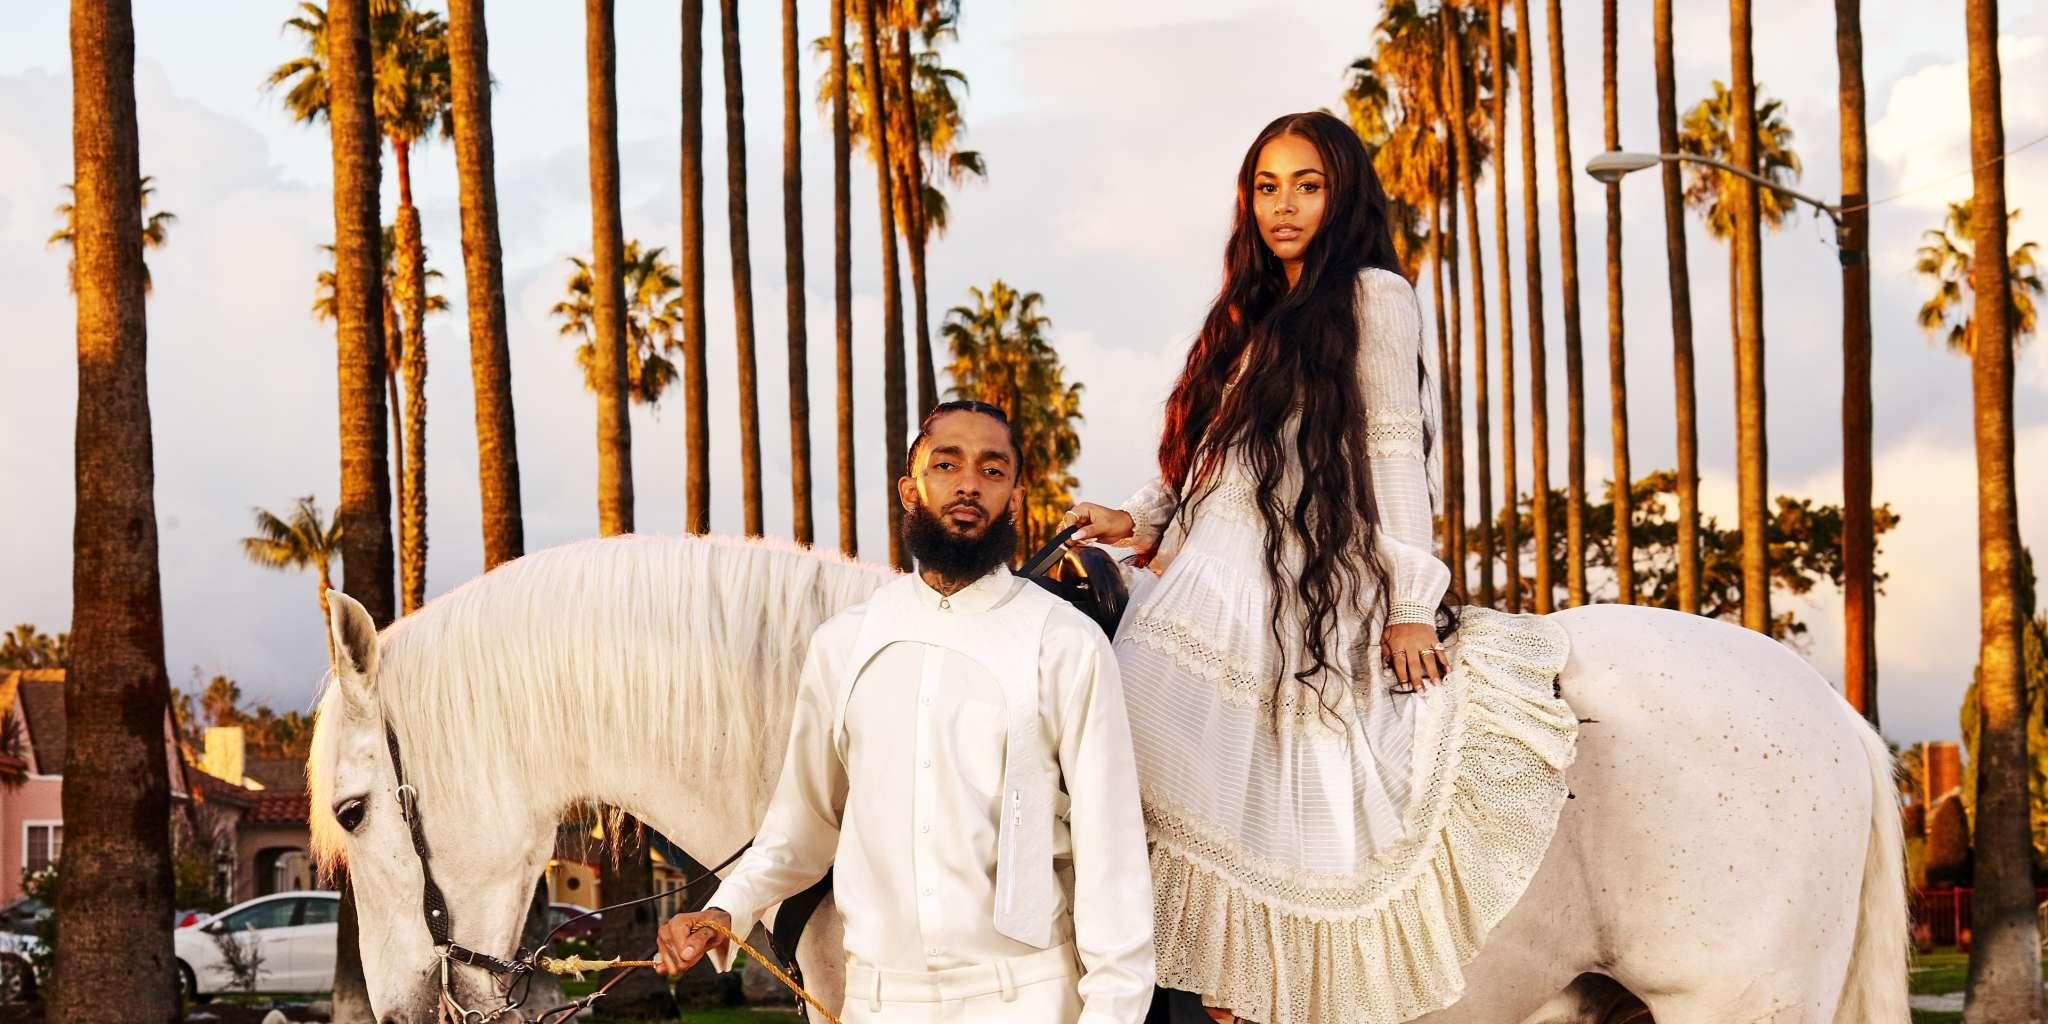 J.Lo, Alicia Keys, Ciara, And More Celebrities Are Sending Their Love And Support To Nipsey Hussle's Devastated Girlfriend Lauren London Who Lost Her 'Sanctuary, Protector, And Soul'